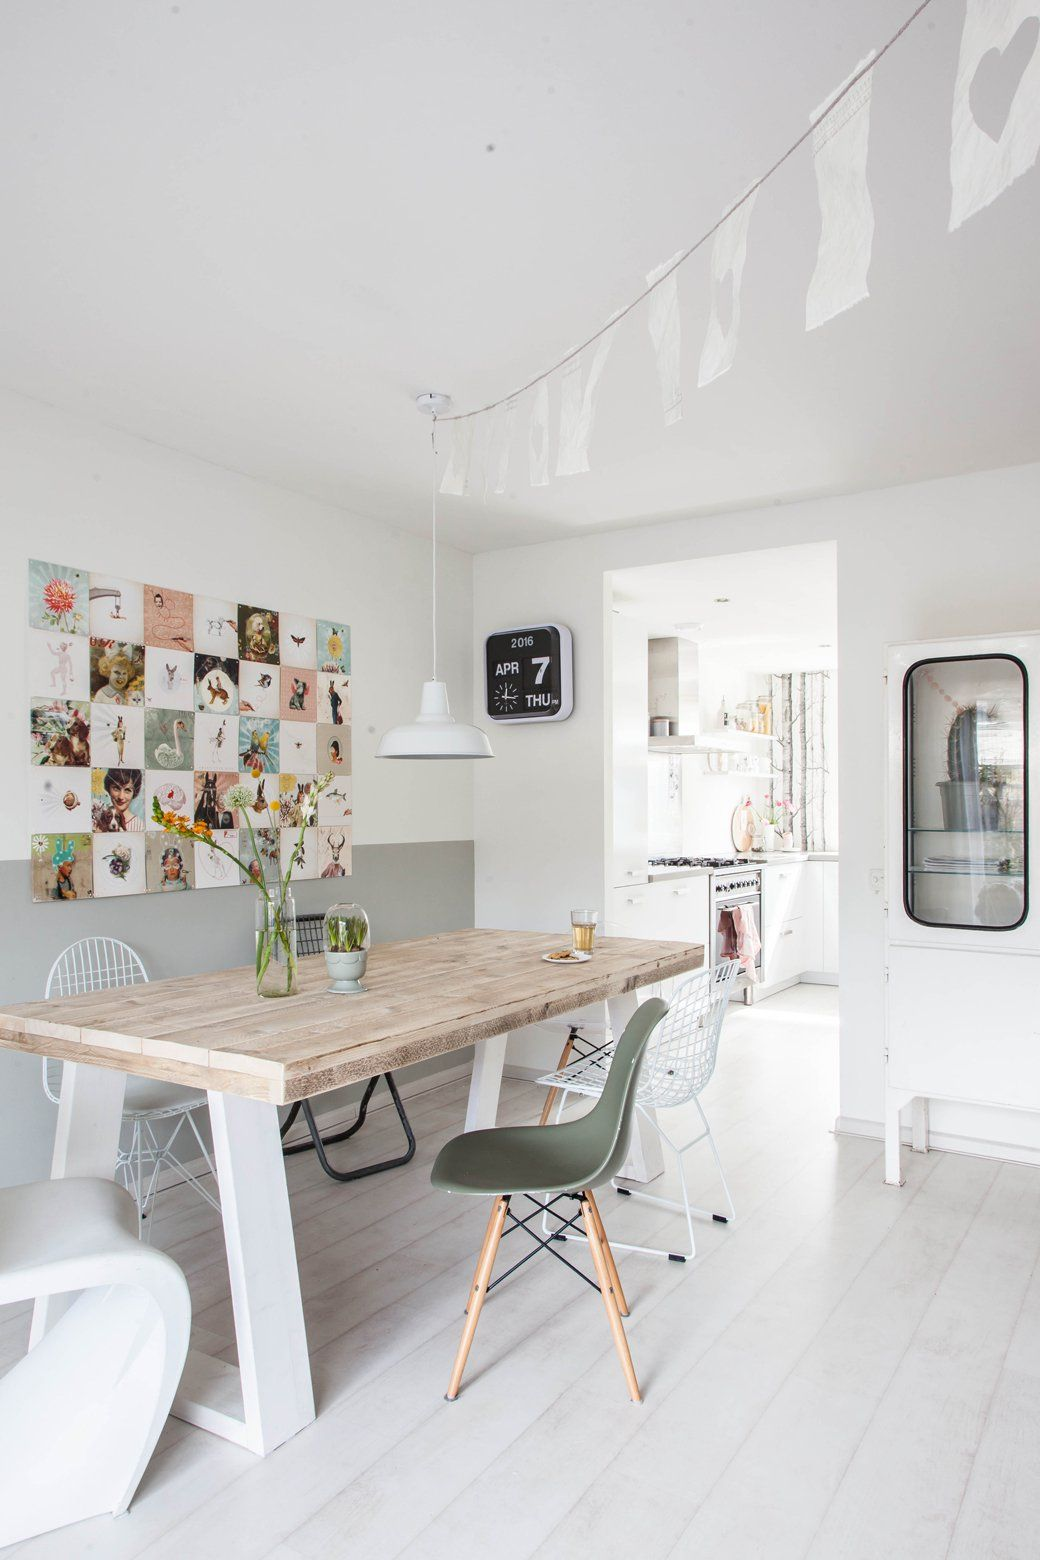 Home Tour: Whimsical Pastels + Family   Whimsical, Decorating and Dining